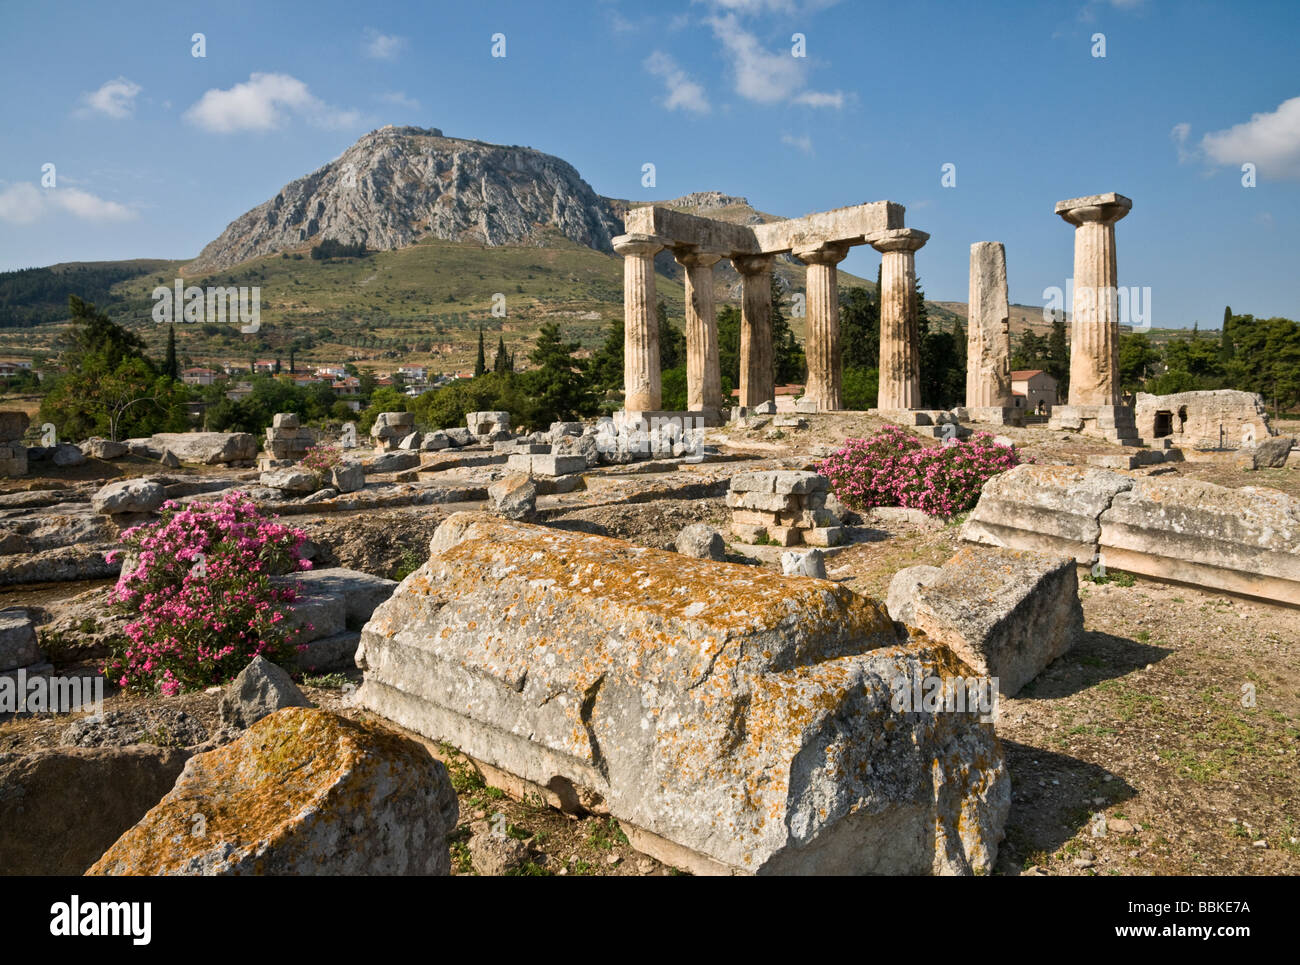 Looking across the 5th cen BC site of the Temple of Apollo at Ancient Corinth, Peloponnese, Greece - Stock Image